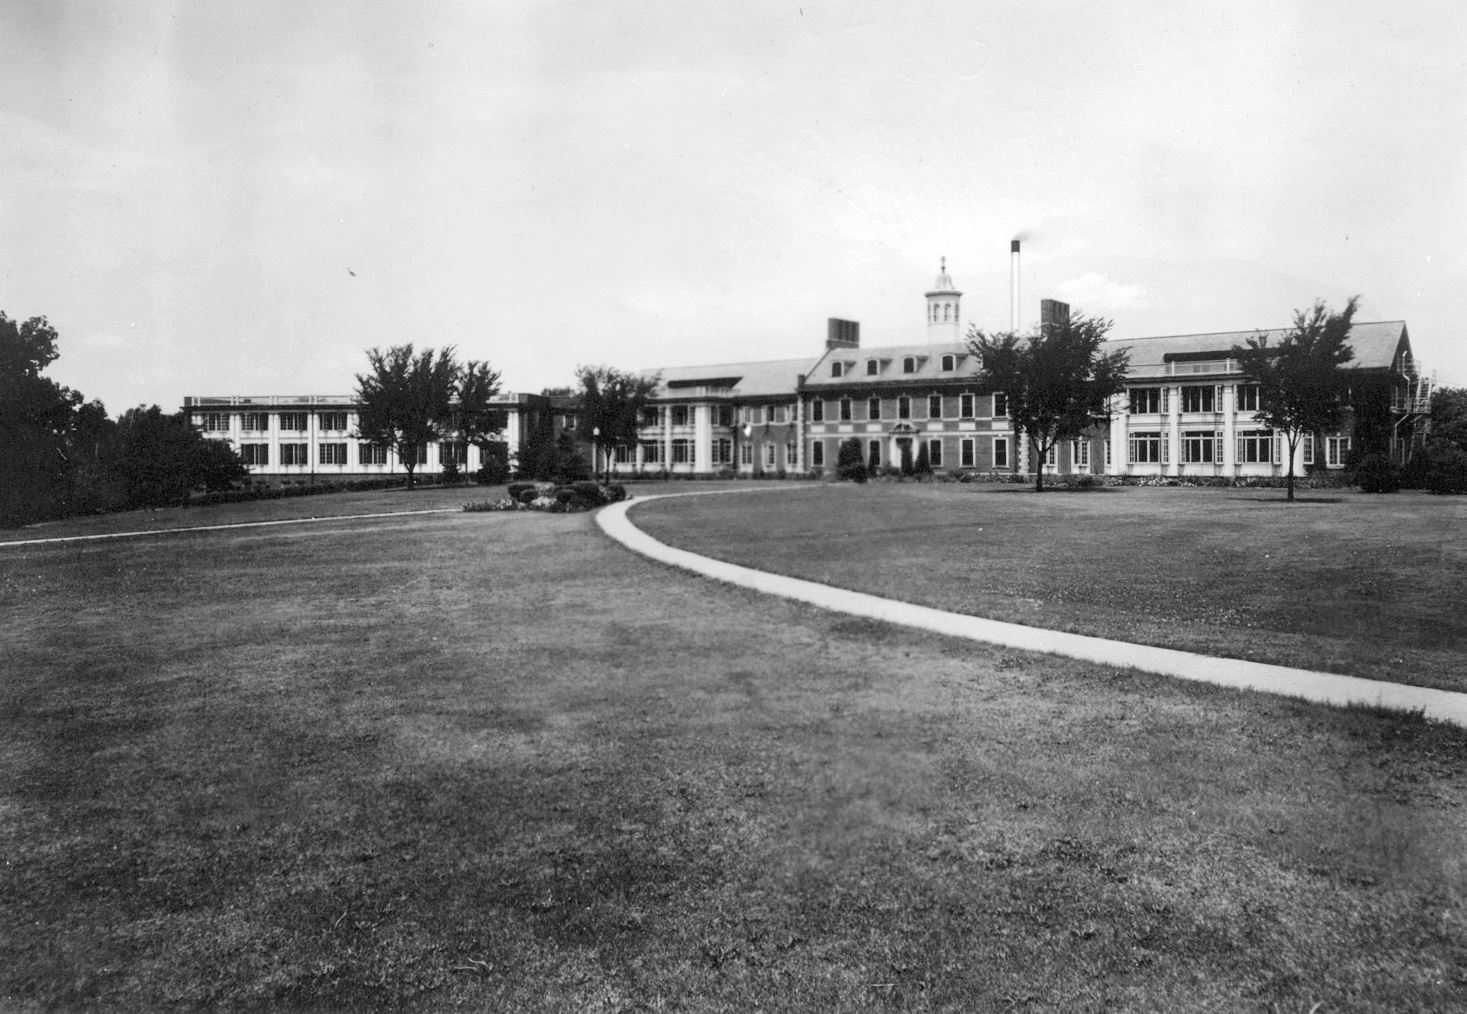 Historic photo of the Broadlawns campus, 1940s, featuring vast lawns